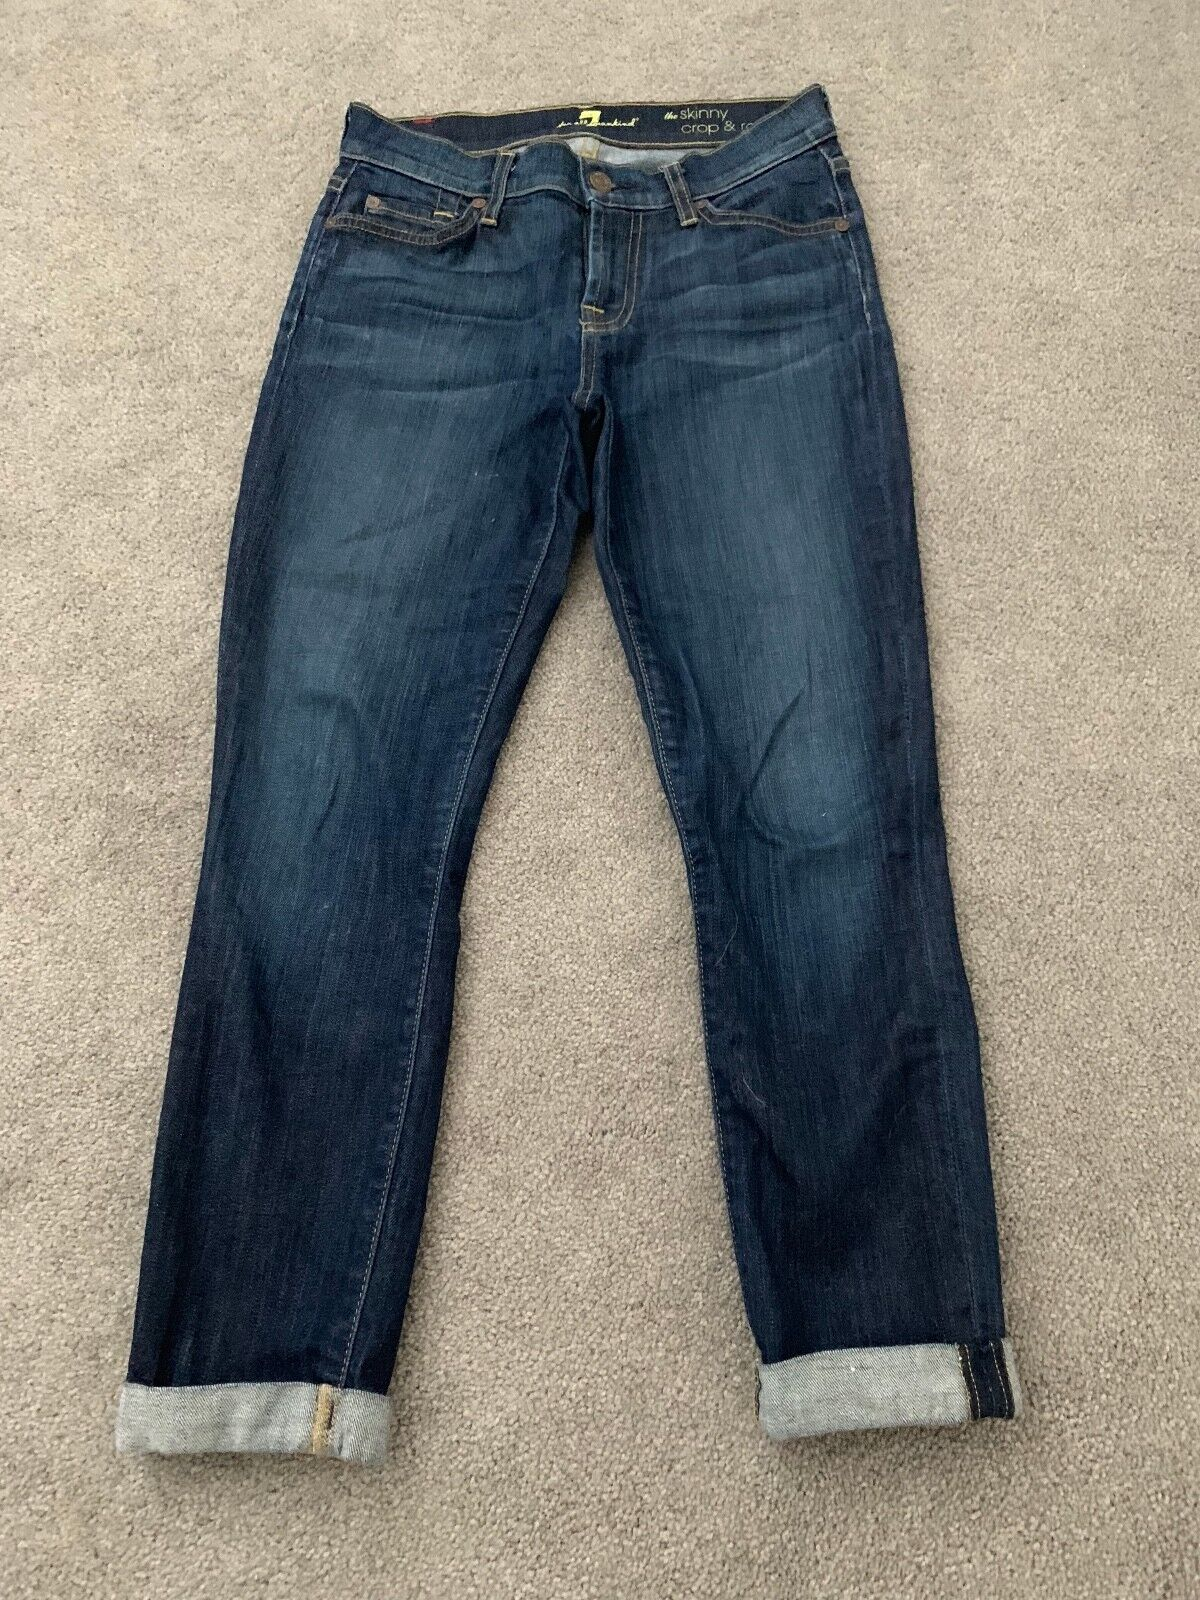 7 For All Mankind The Skinny Crop And Roll Jeans Dark Denim 25